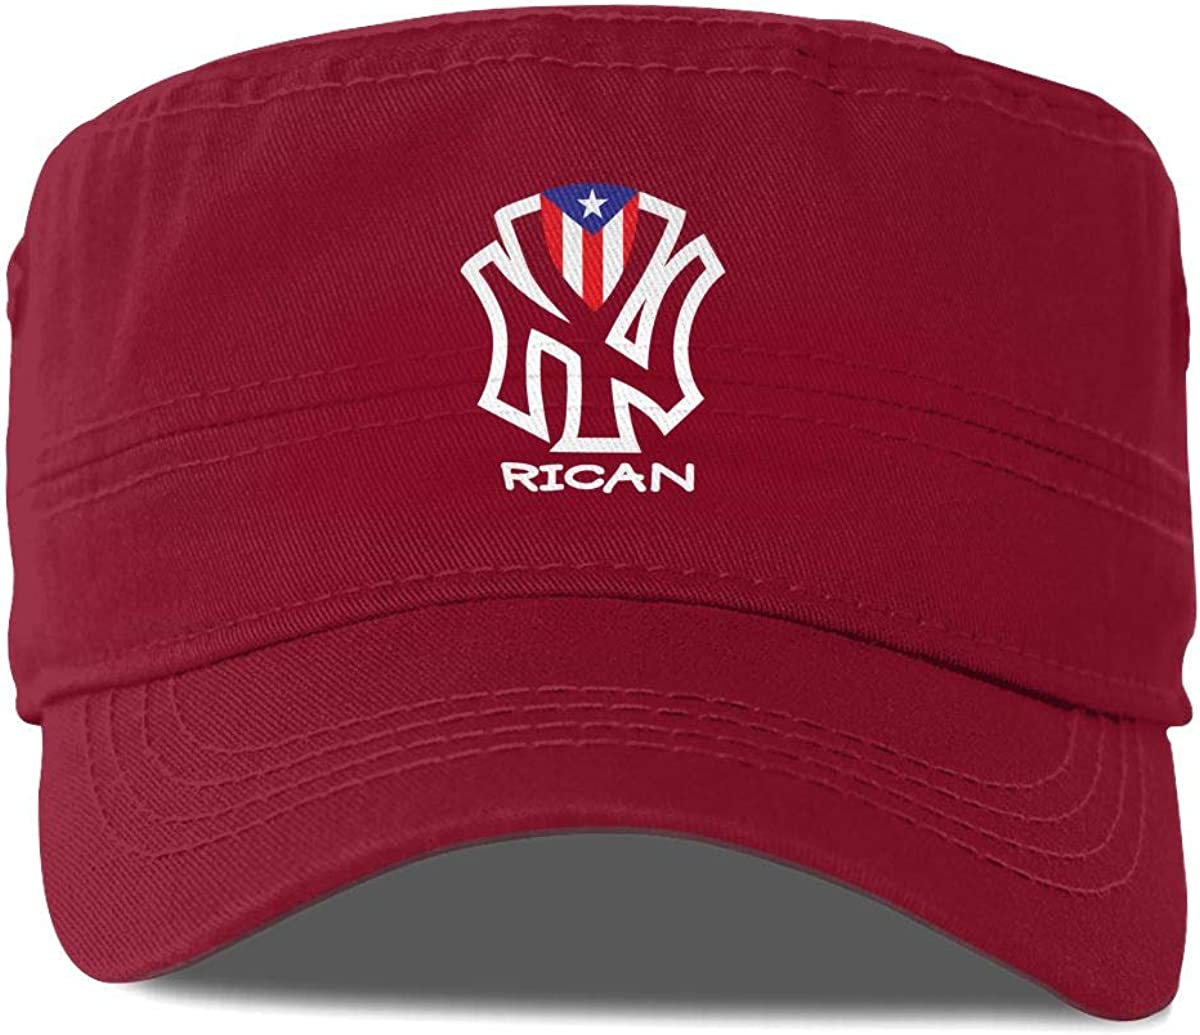 Puerto Rico Flag Unisex Adult Cotton Military Army Cap Flat Top Hat